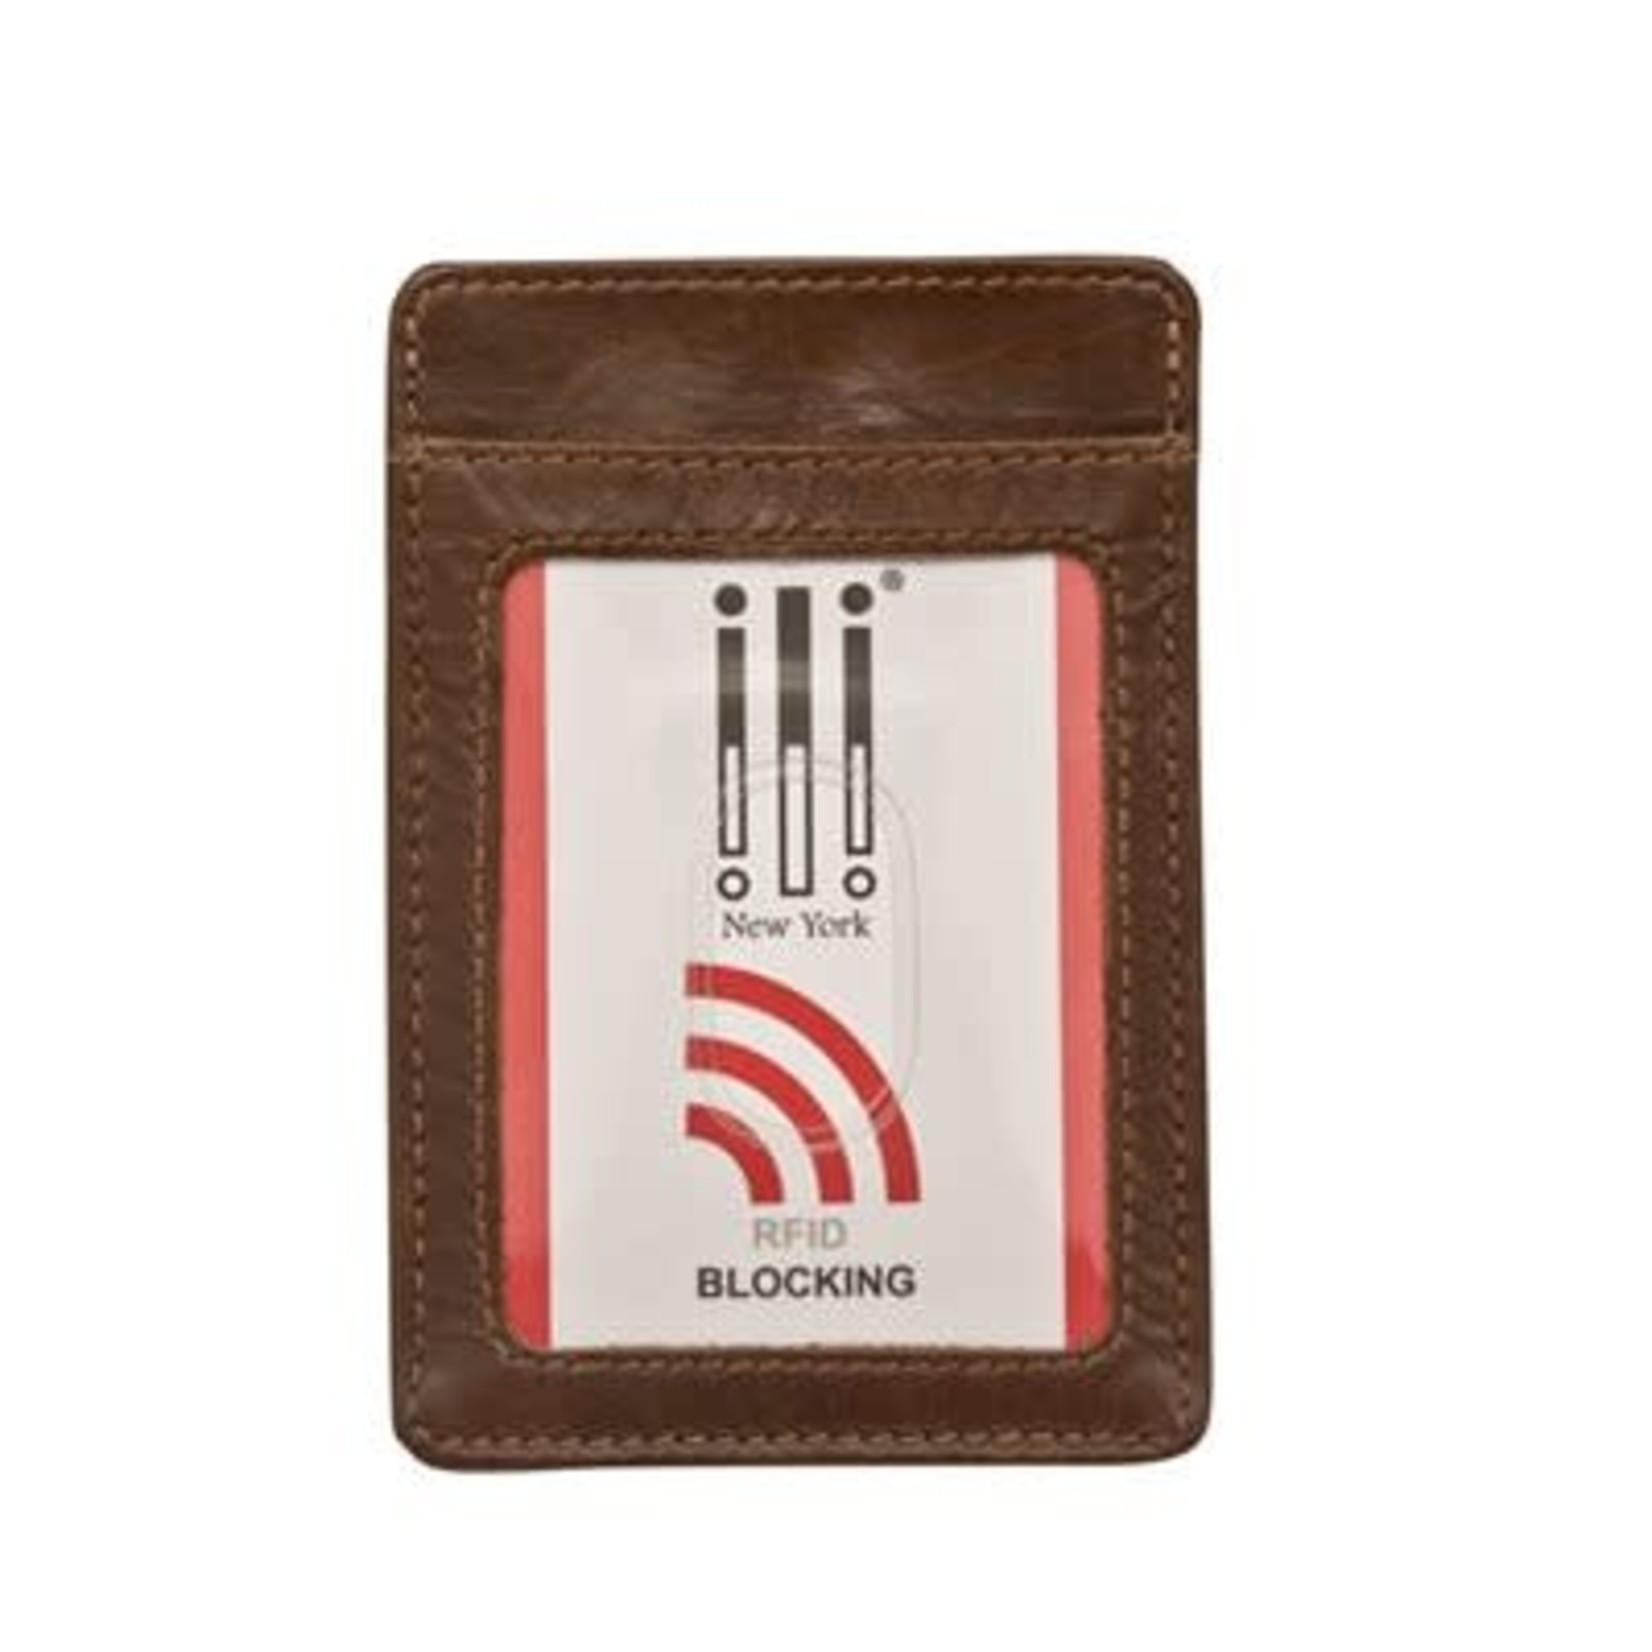 Leather Handbags and Accessories 7717 Toffee - RFID Money Clip Card Holder